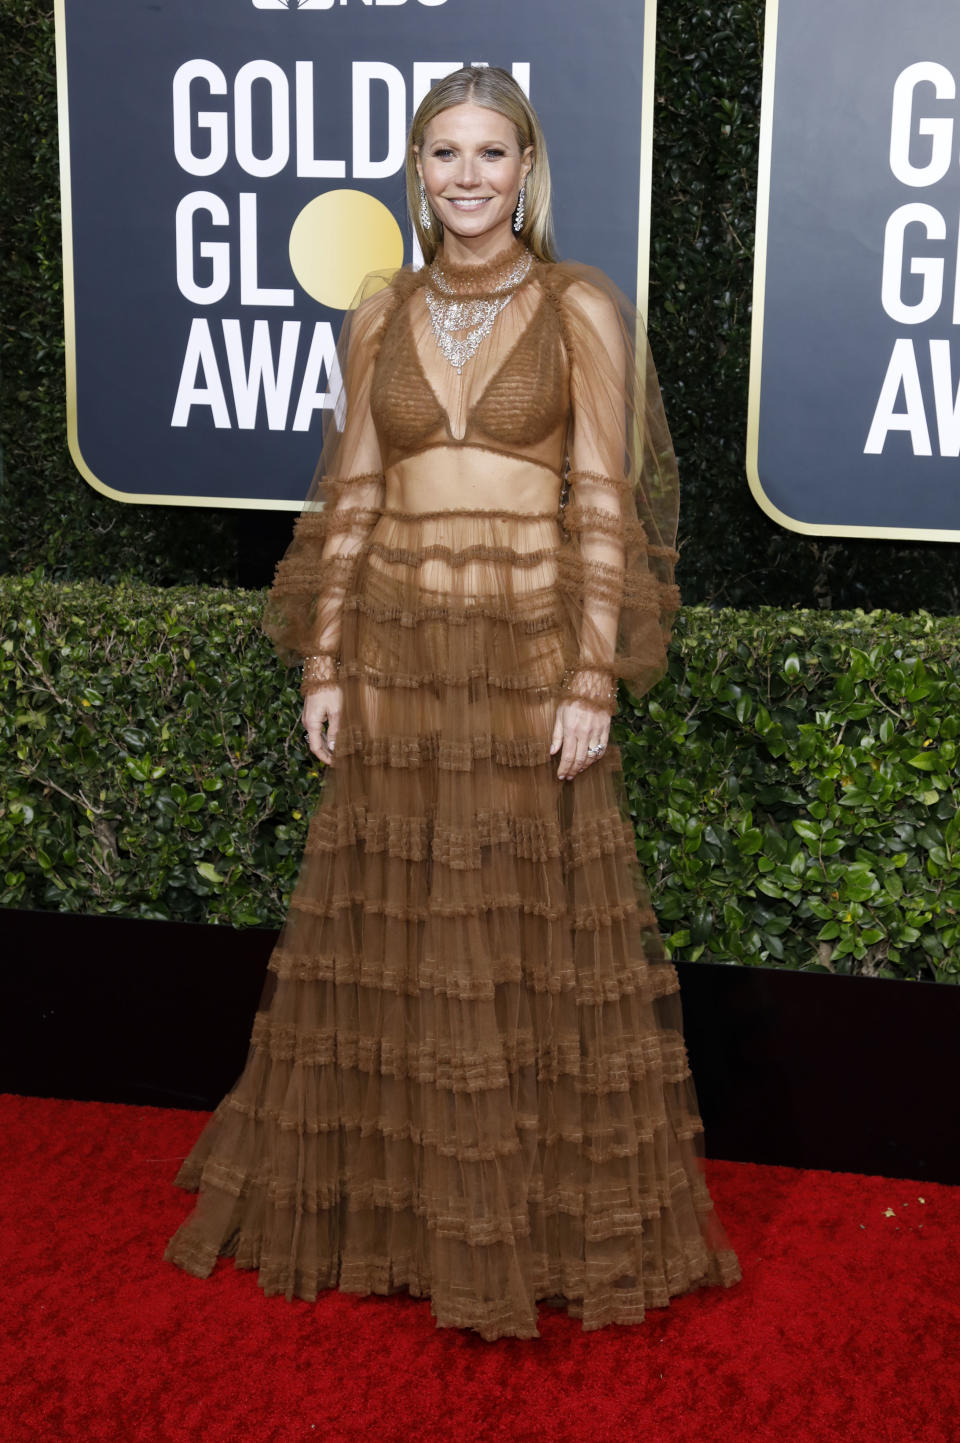 LOS ANGELES, CALIFORNIA, UNITED STATES - JANUARY 5, 2020 -                          Gwyneth Paltrow photographed on the red carpet of the 77th Annual Golden Globe Awards at The Beverly Hilton Hotel on January 05, 2020 in Beverly Hills, California.- PHOTOGRAPH BY P. Lehman / Barcroft Media (Photo credit should read P. Lehman / Barcroft Media via Getty Images)